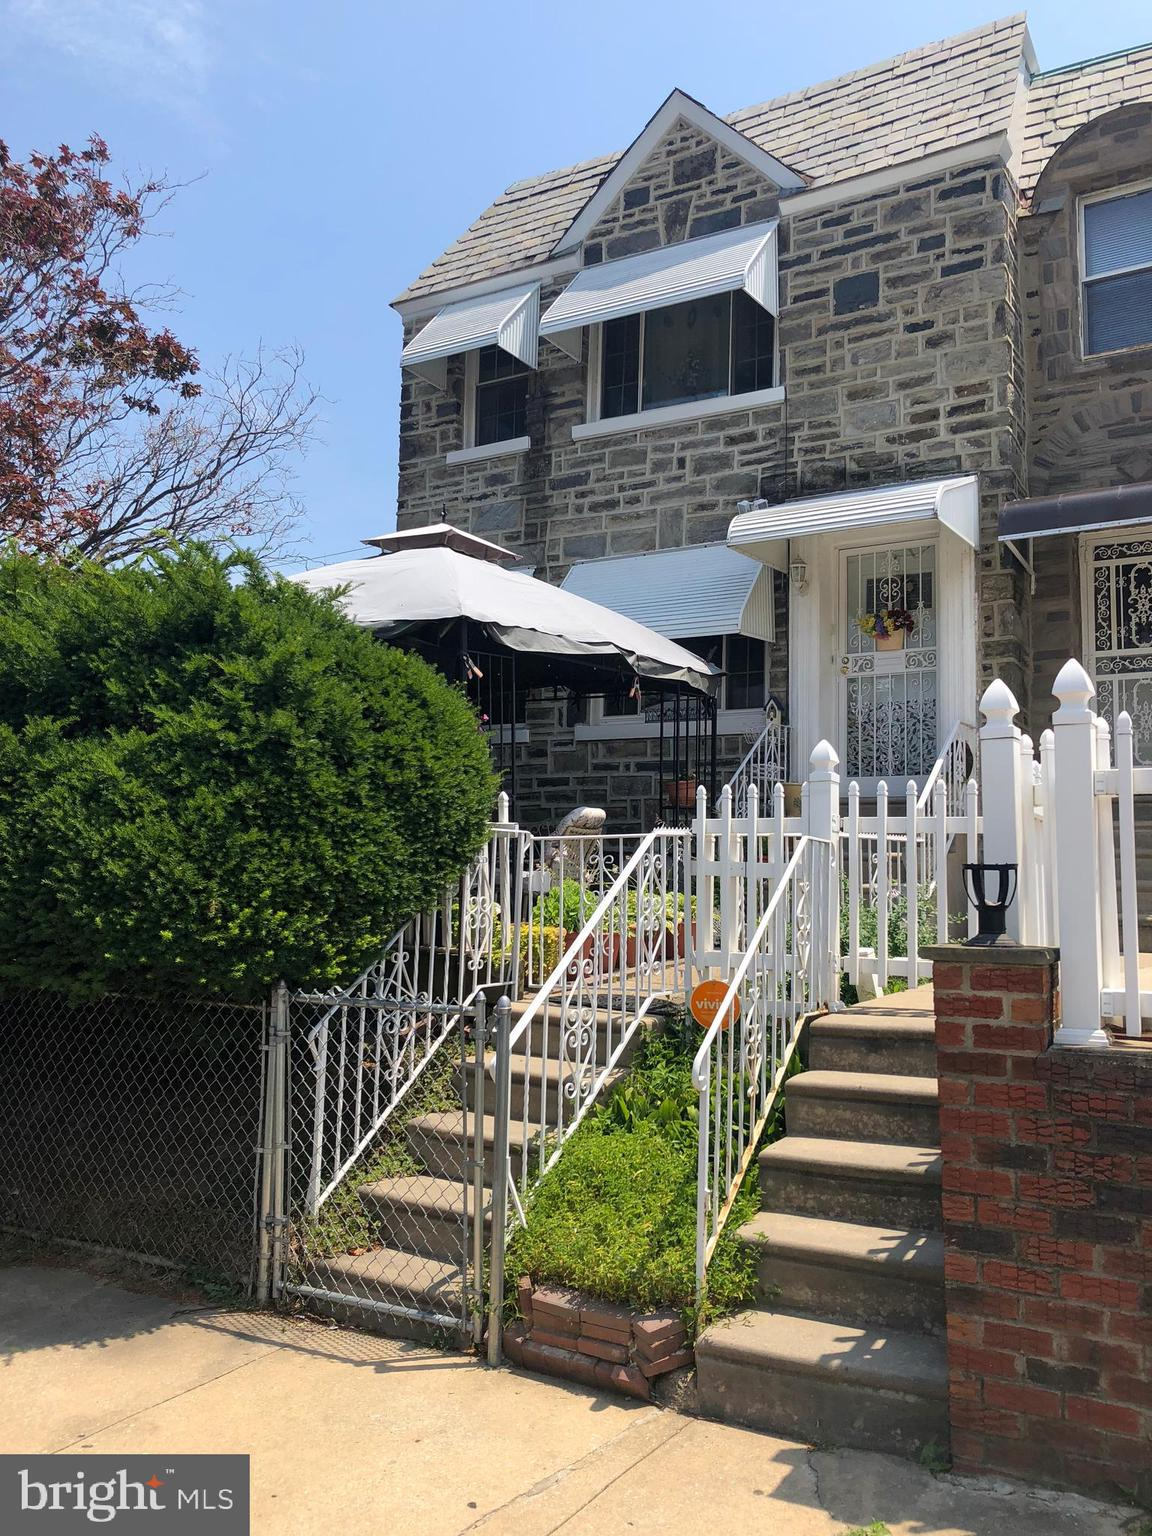 6951 KINDRED STREET, PHILADELPHIA, PA 19149